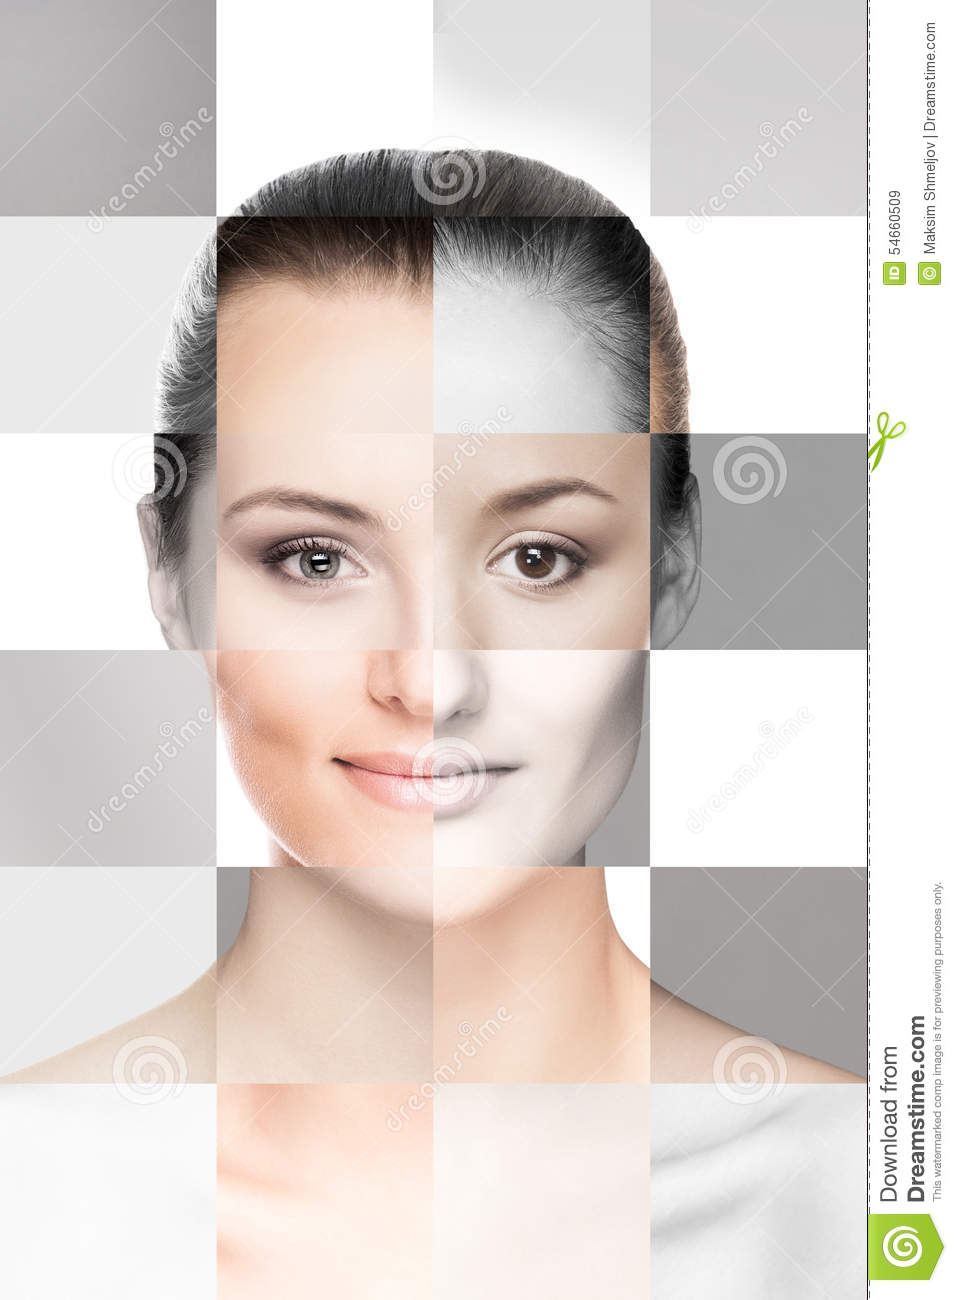 Collage Of Female Faces In Makeup Stock Photo